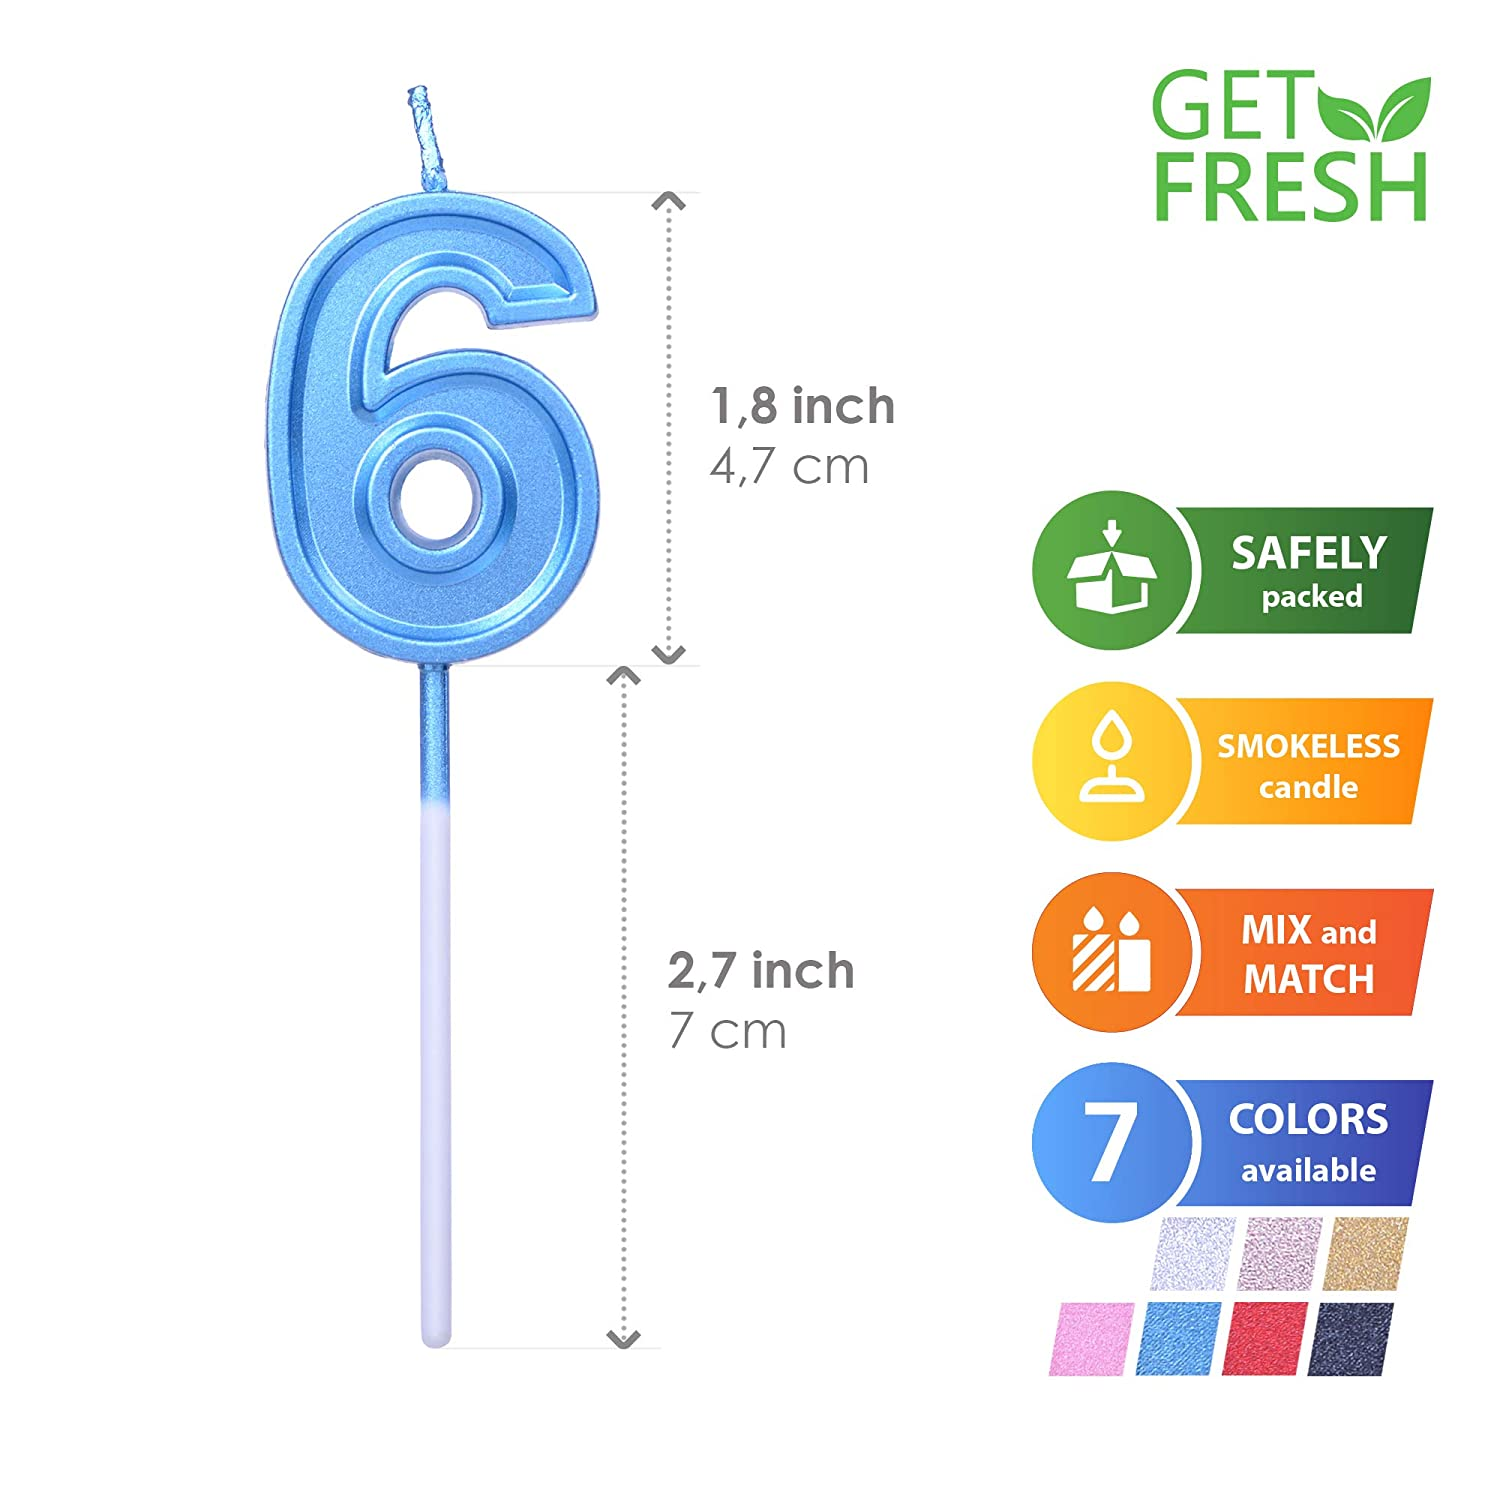 Elegant Blue Number Candles for Birthday Wedding Anniversary GET FRESH Number 0 Birthday Candle Perfect 0 Birthday Candle Cake Topper Blue Number Zero Candle on Stick Blue 0 Candle